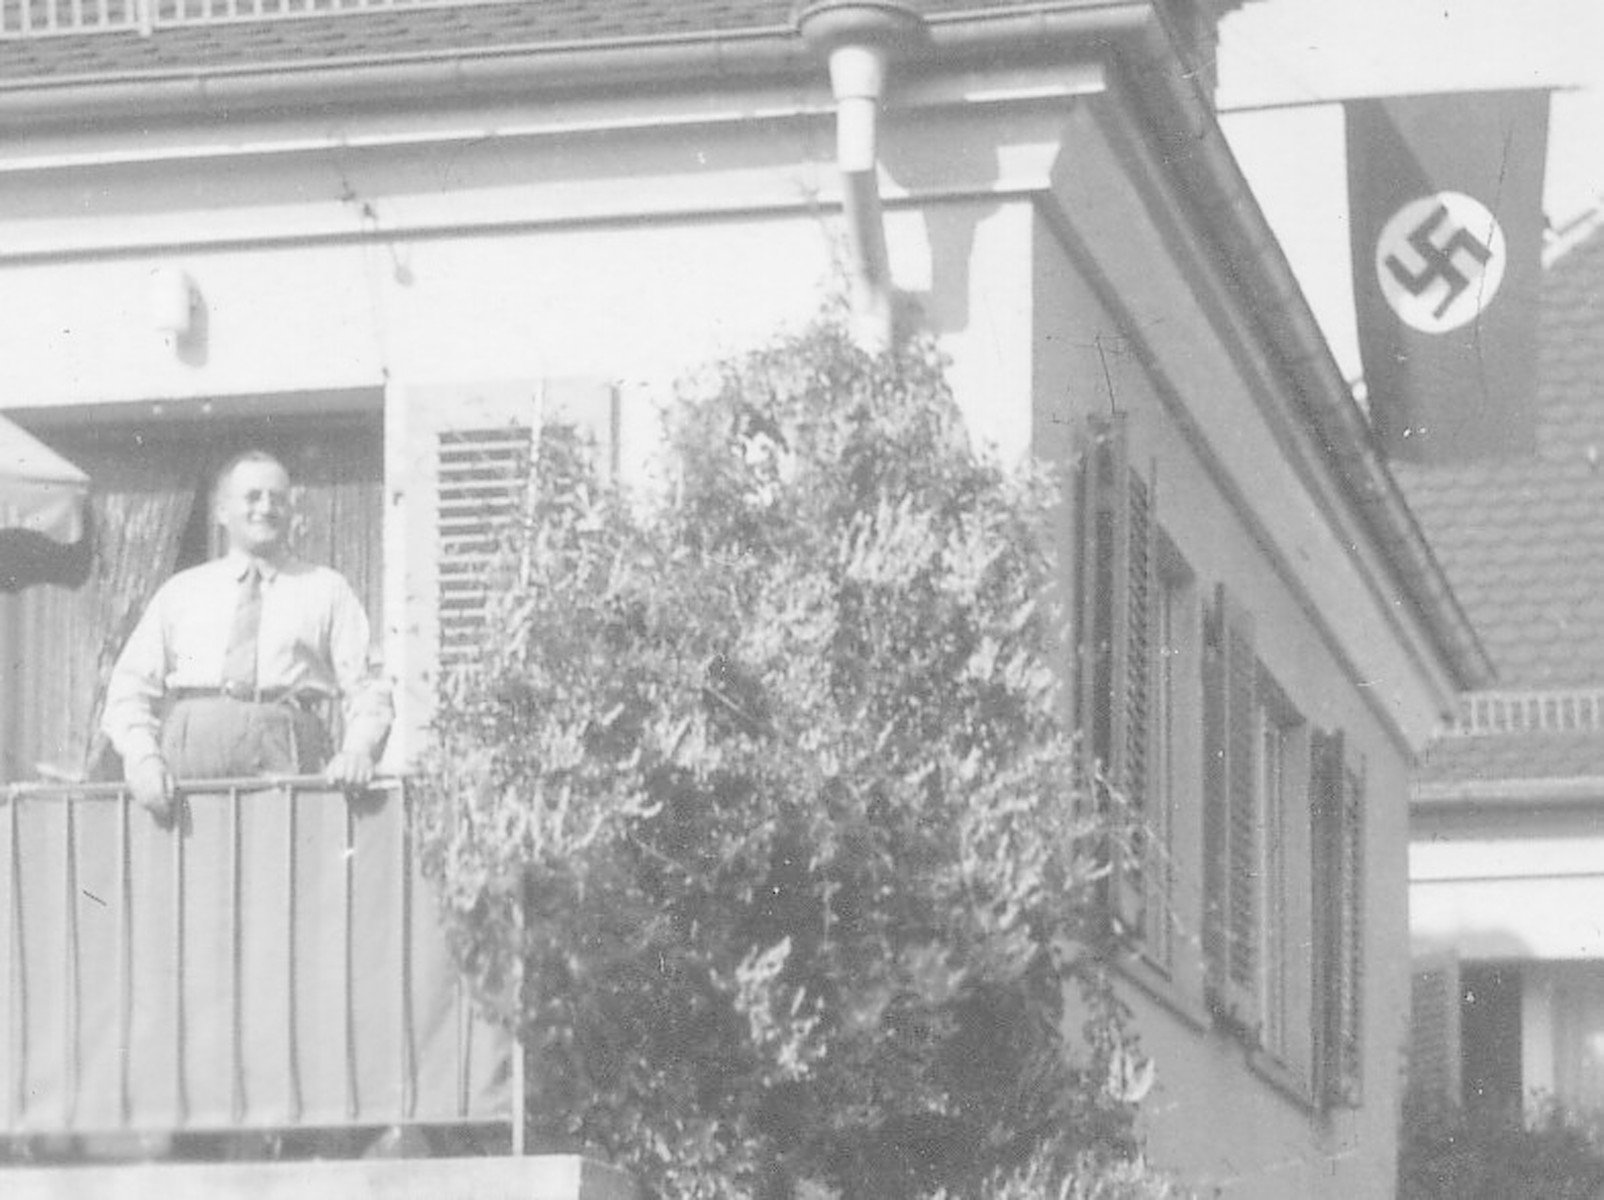 Felix Streim poses on the balcony of his apartment in Germany while a Nazi flag hangs in the background.  Felix Streim was the half-brother of Bertha Rehfisch (and great uncle of the donor).  He immigrated to New York City before WWII.